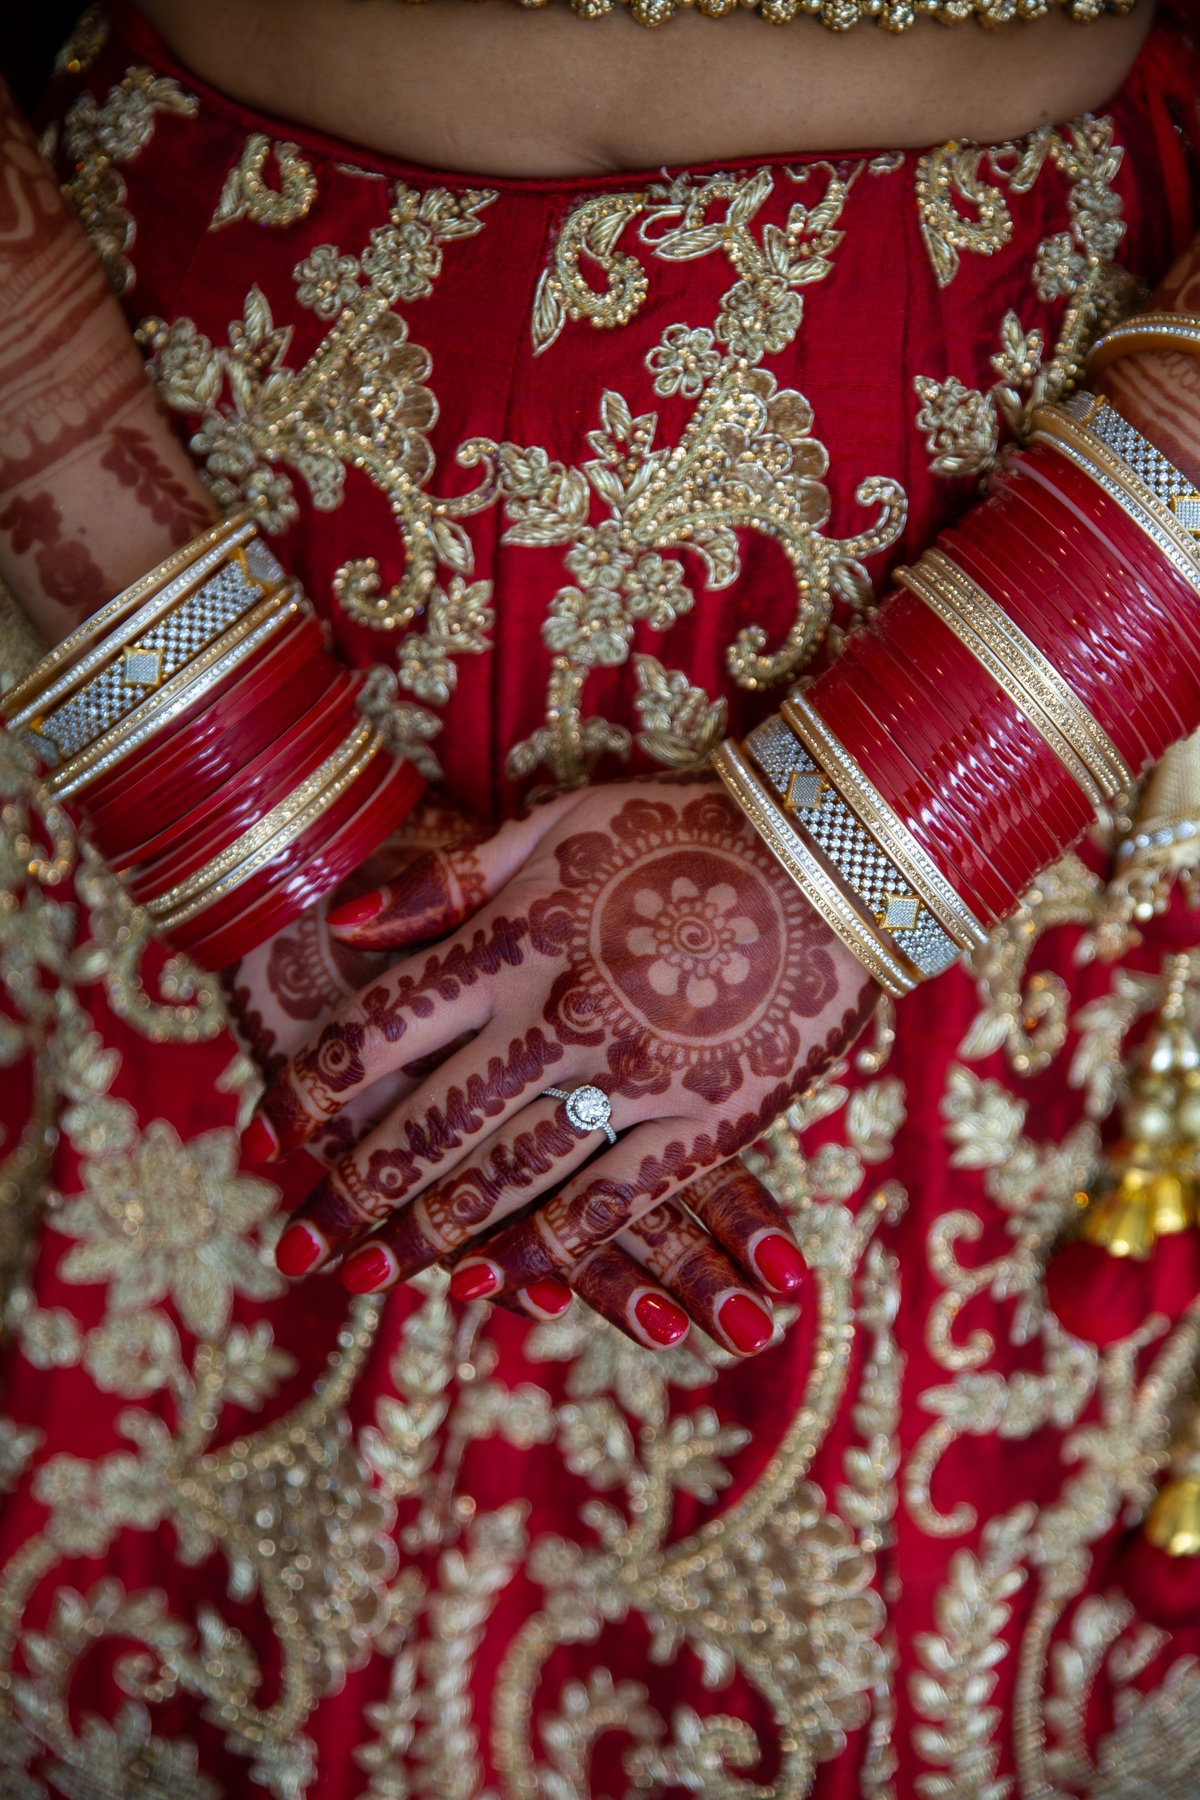 Le Cape Weddings - South Asian Wedding - Chicago Wedding Photographer P&V-30.jpg